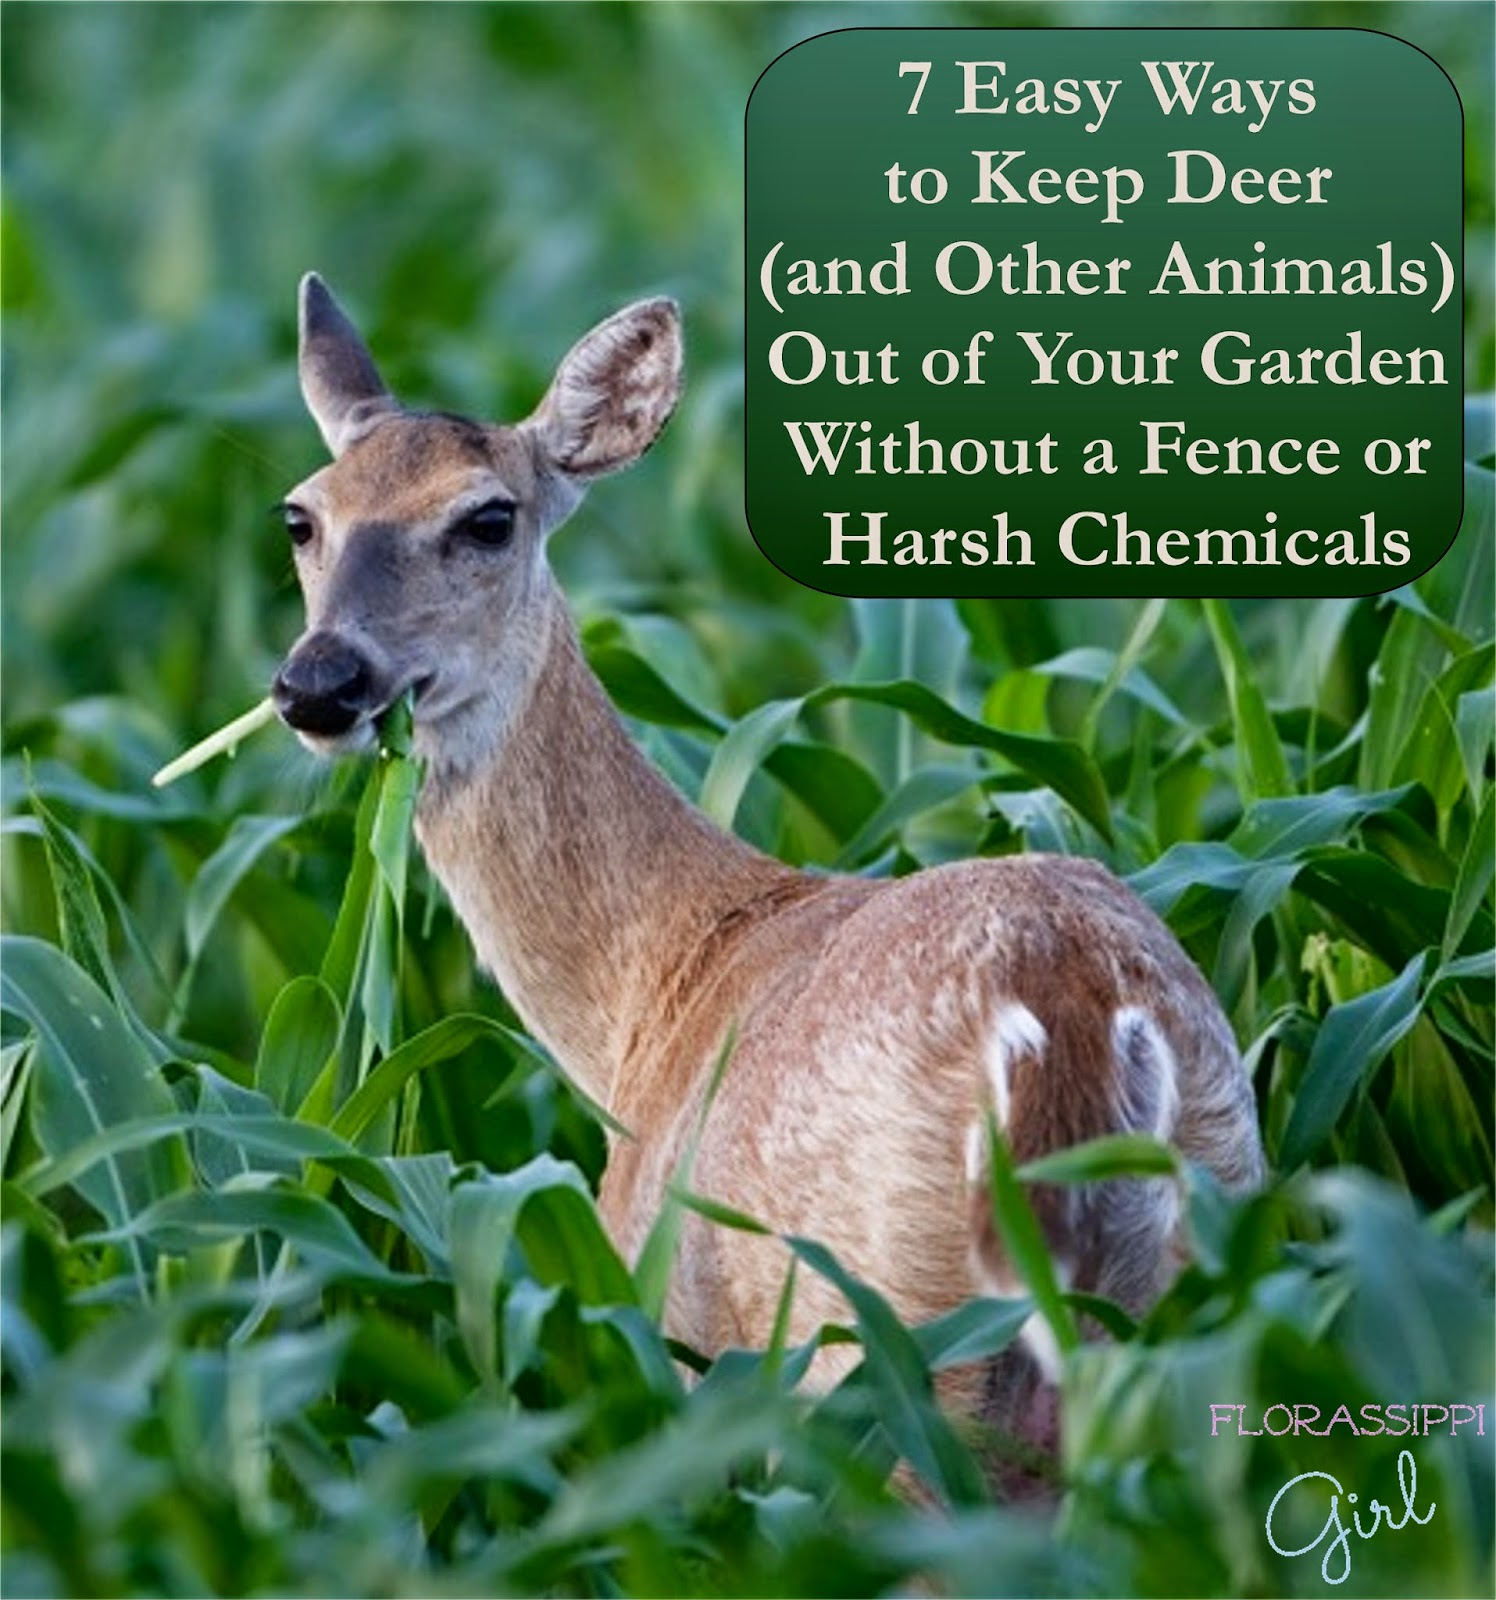 florassippi girl 7 easy ways to keep deer and other animals out of your garden without a